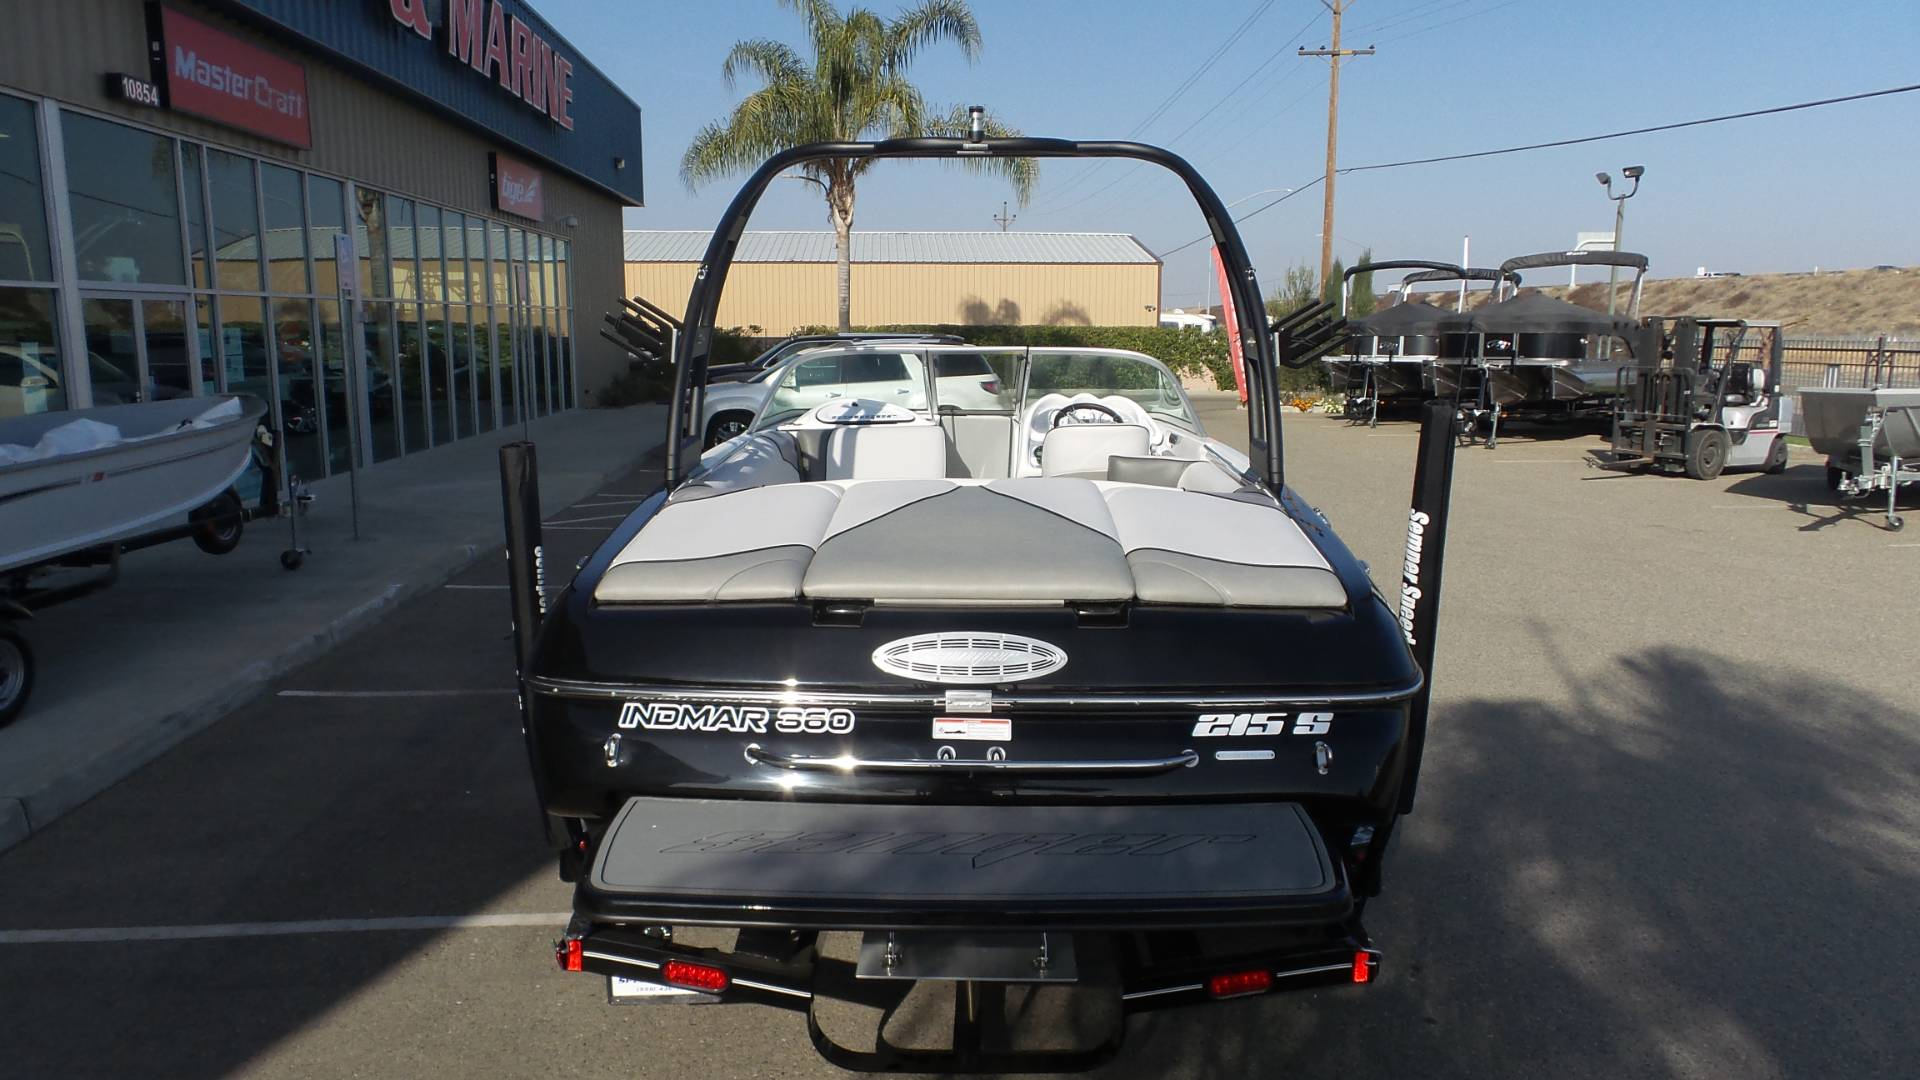 2018 Sanger Boats V215 S in Madera, California